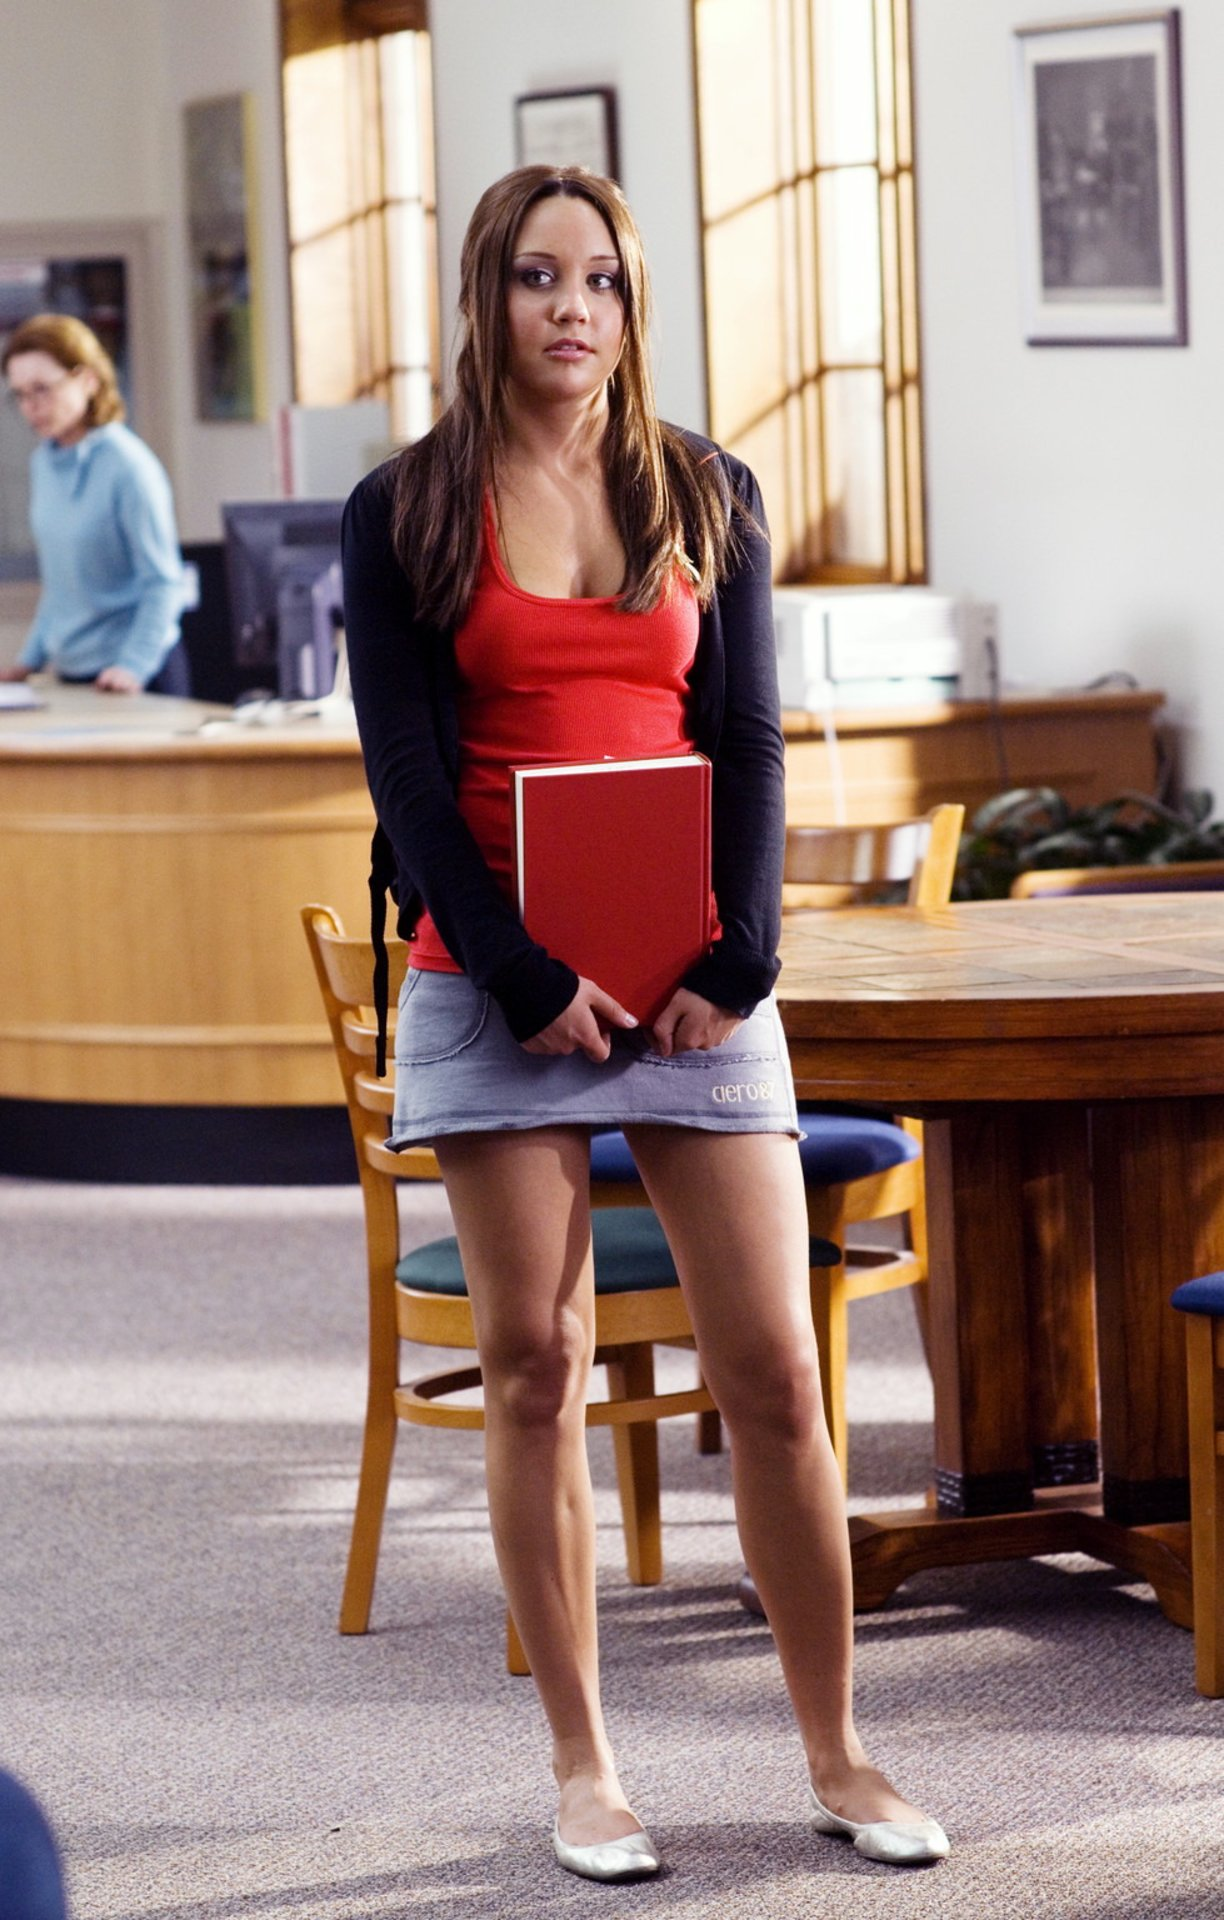 Sydney White Campus Queen